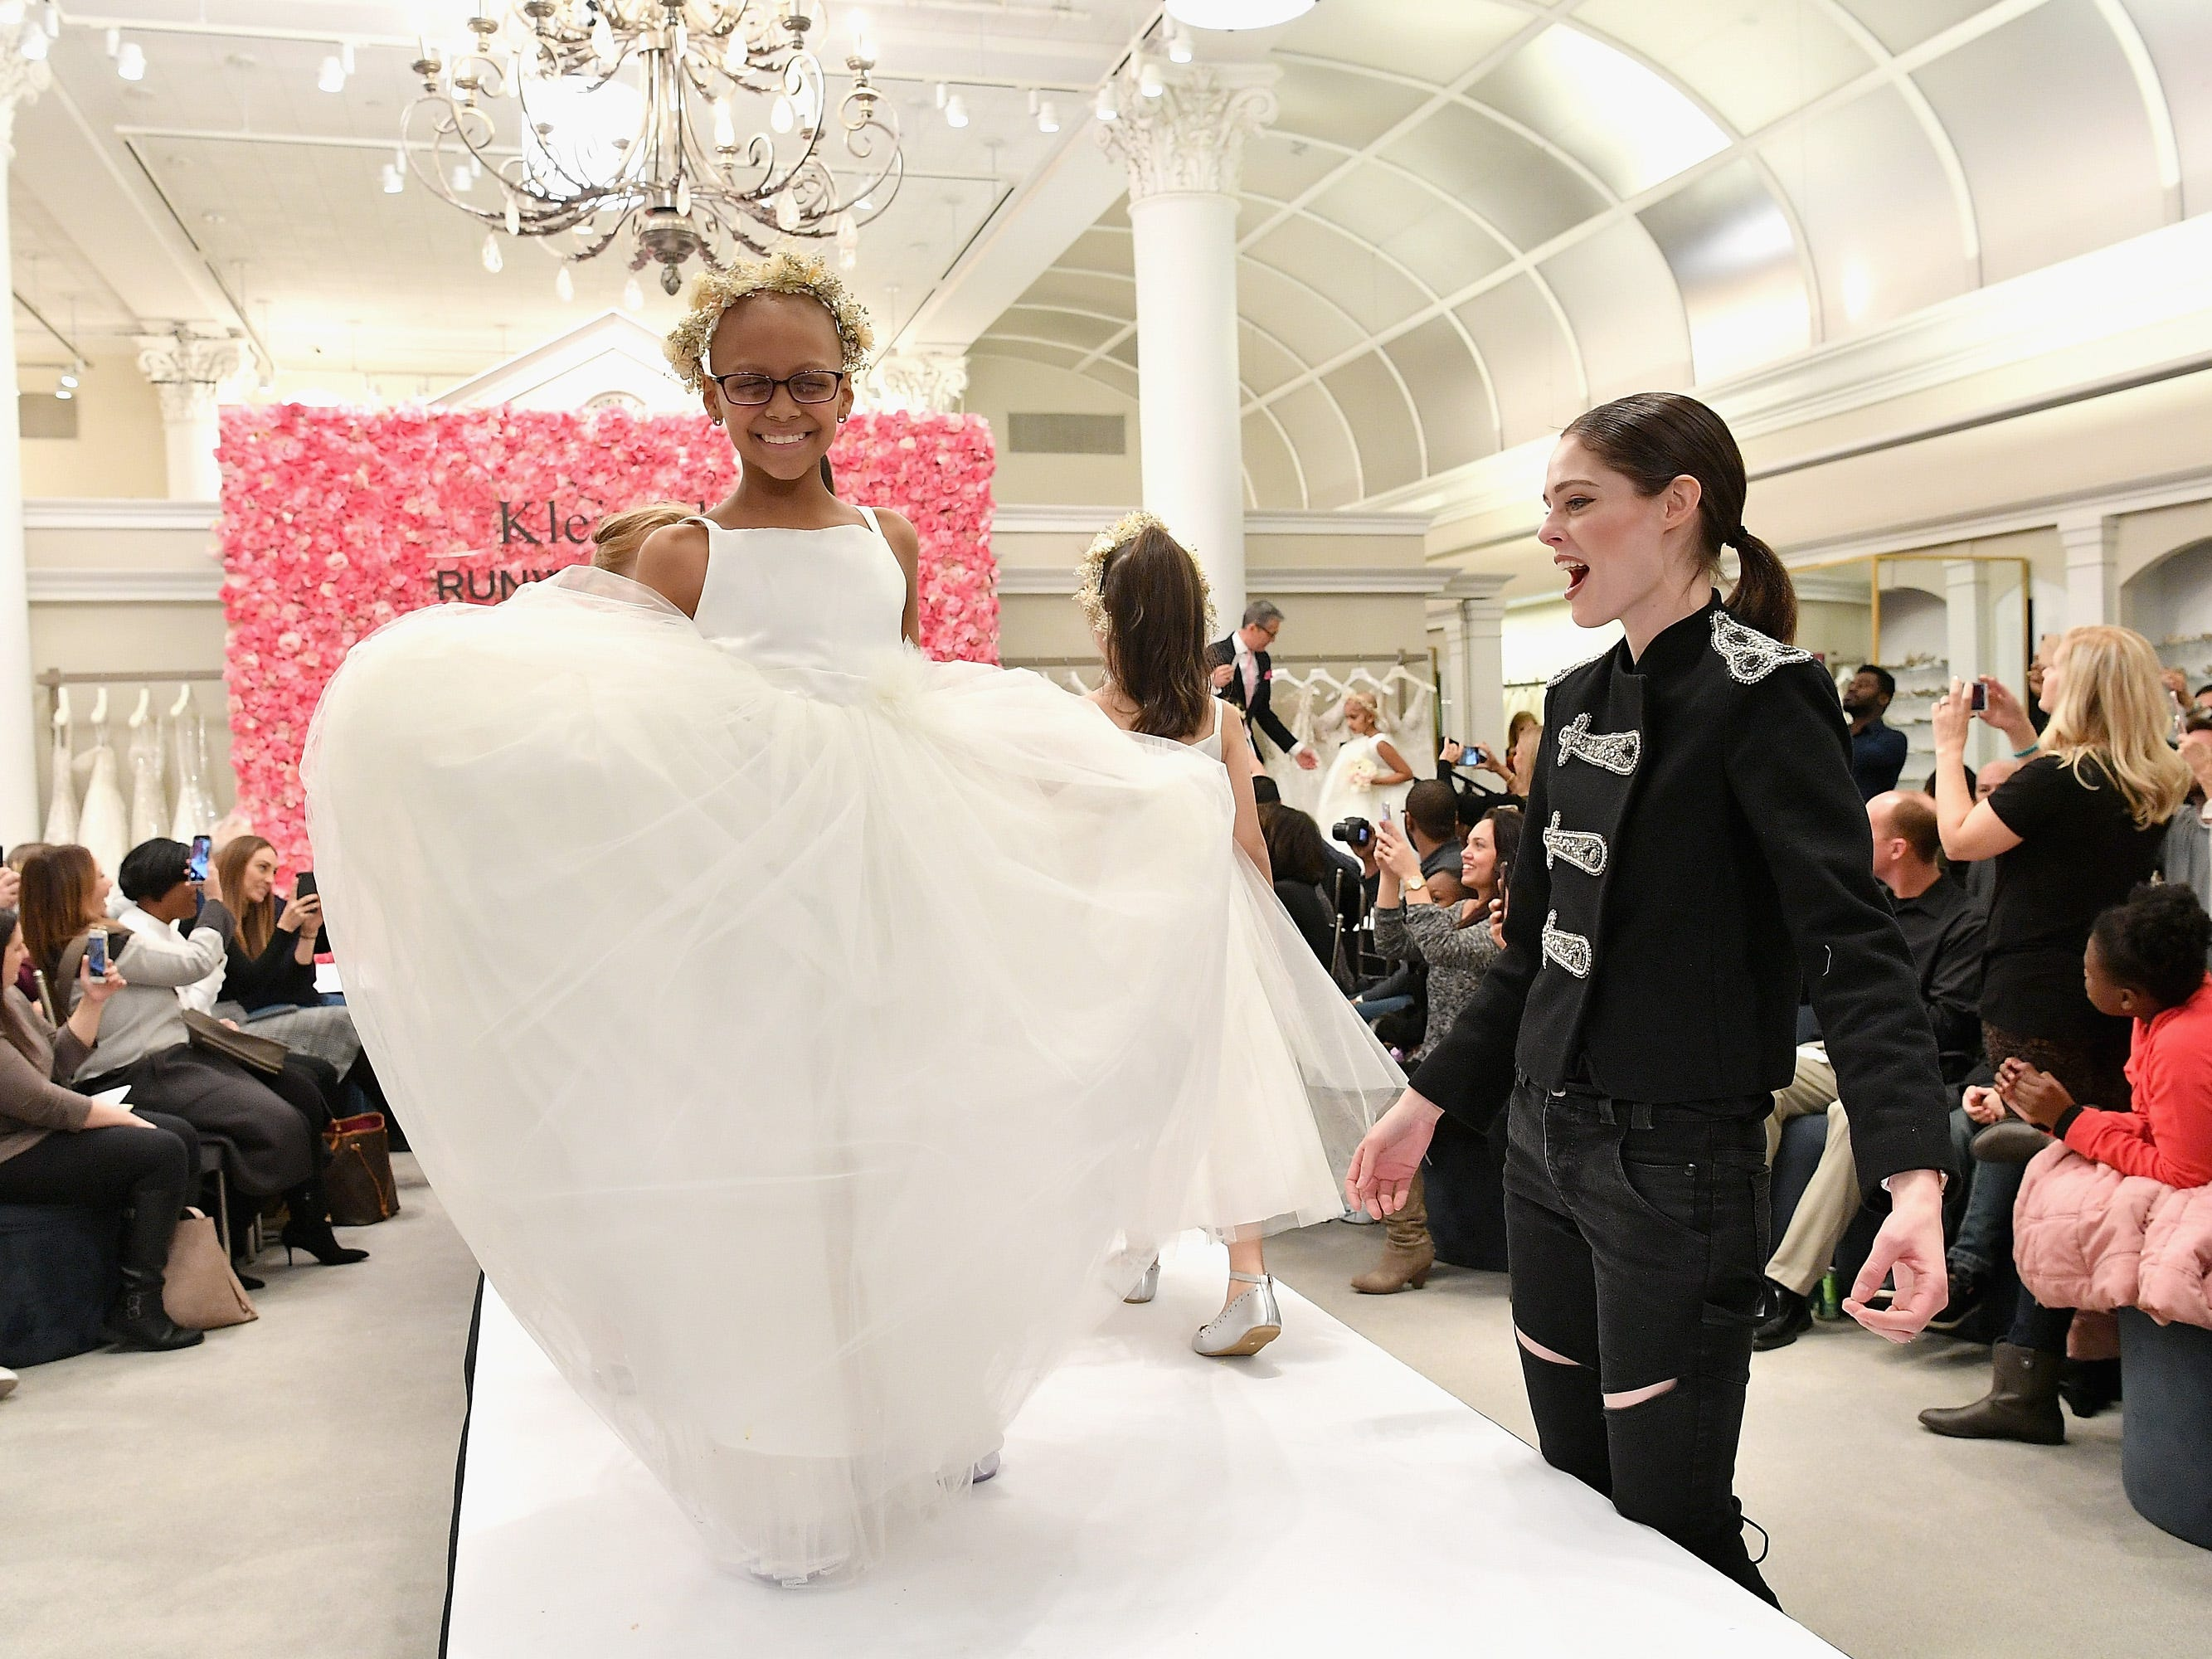 Model Coco Rocha cheers on childhood cancer fighters and survivors as they walk the runway during  Runway Heroes to Benefit Childhood Cancer Research at Kleinfeld on December 10, 2018, in New York City.